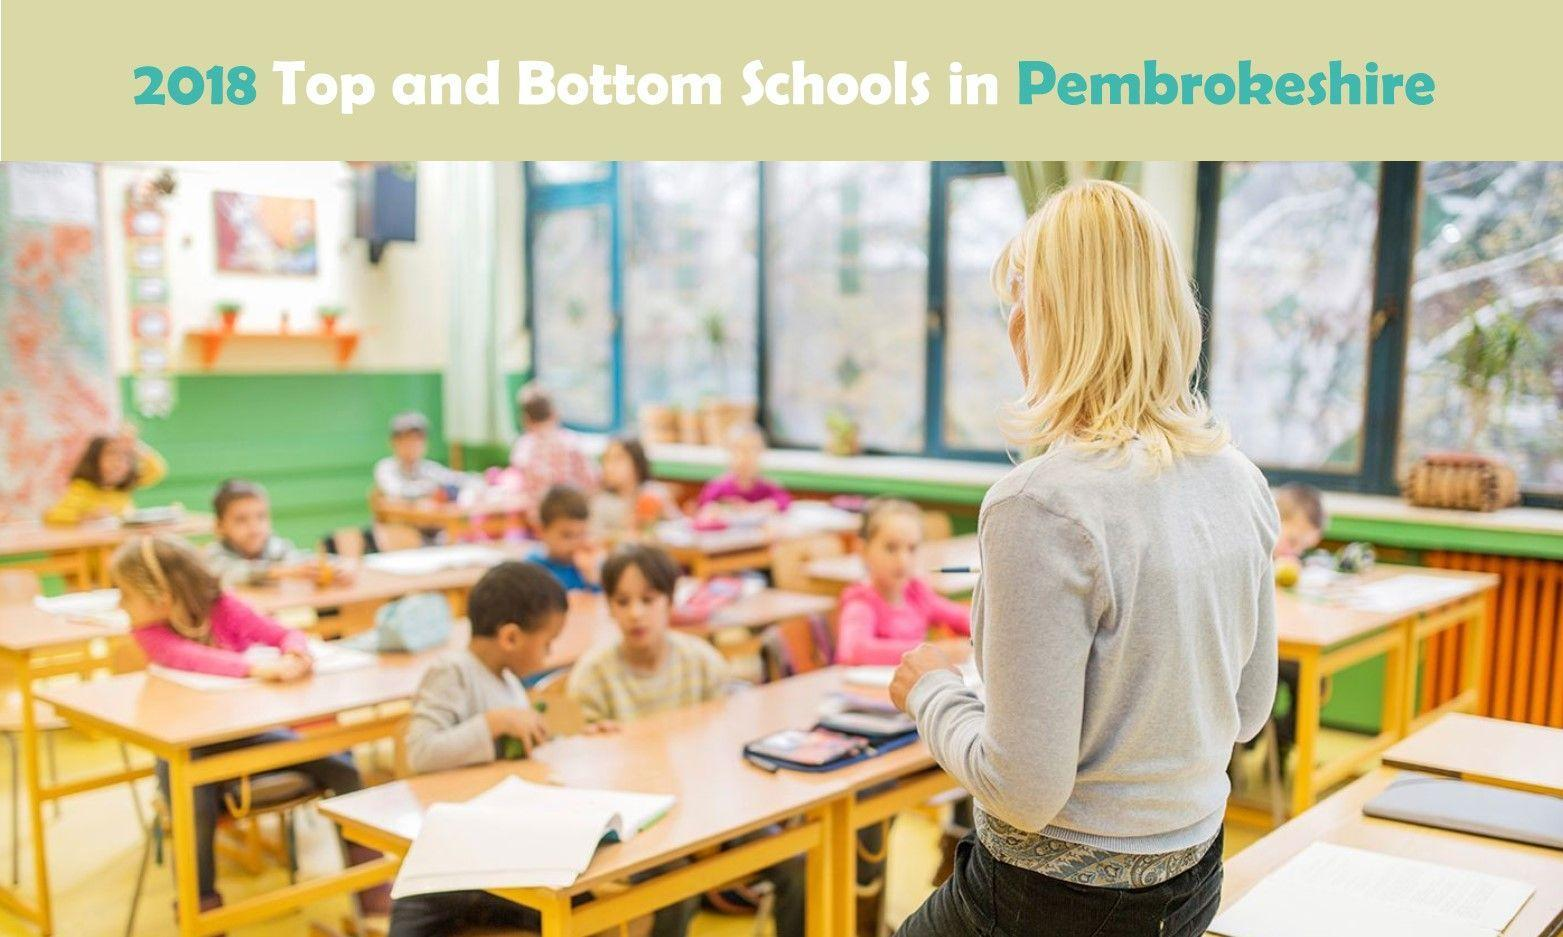 2018 Top and Bottom Schools in Pembrokeshire